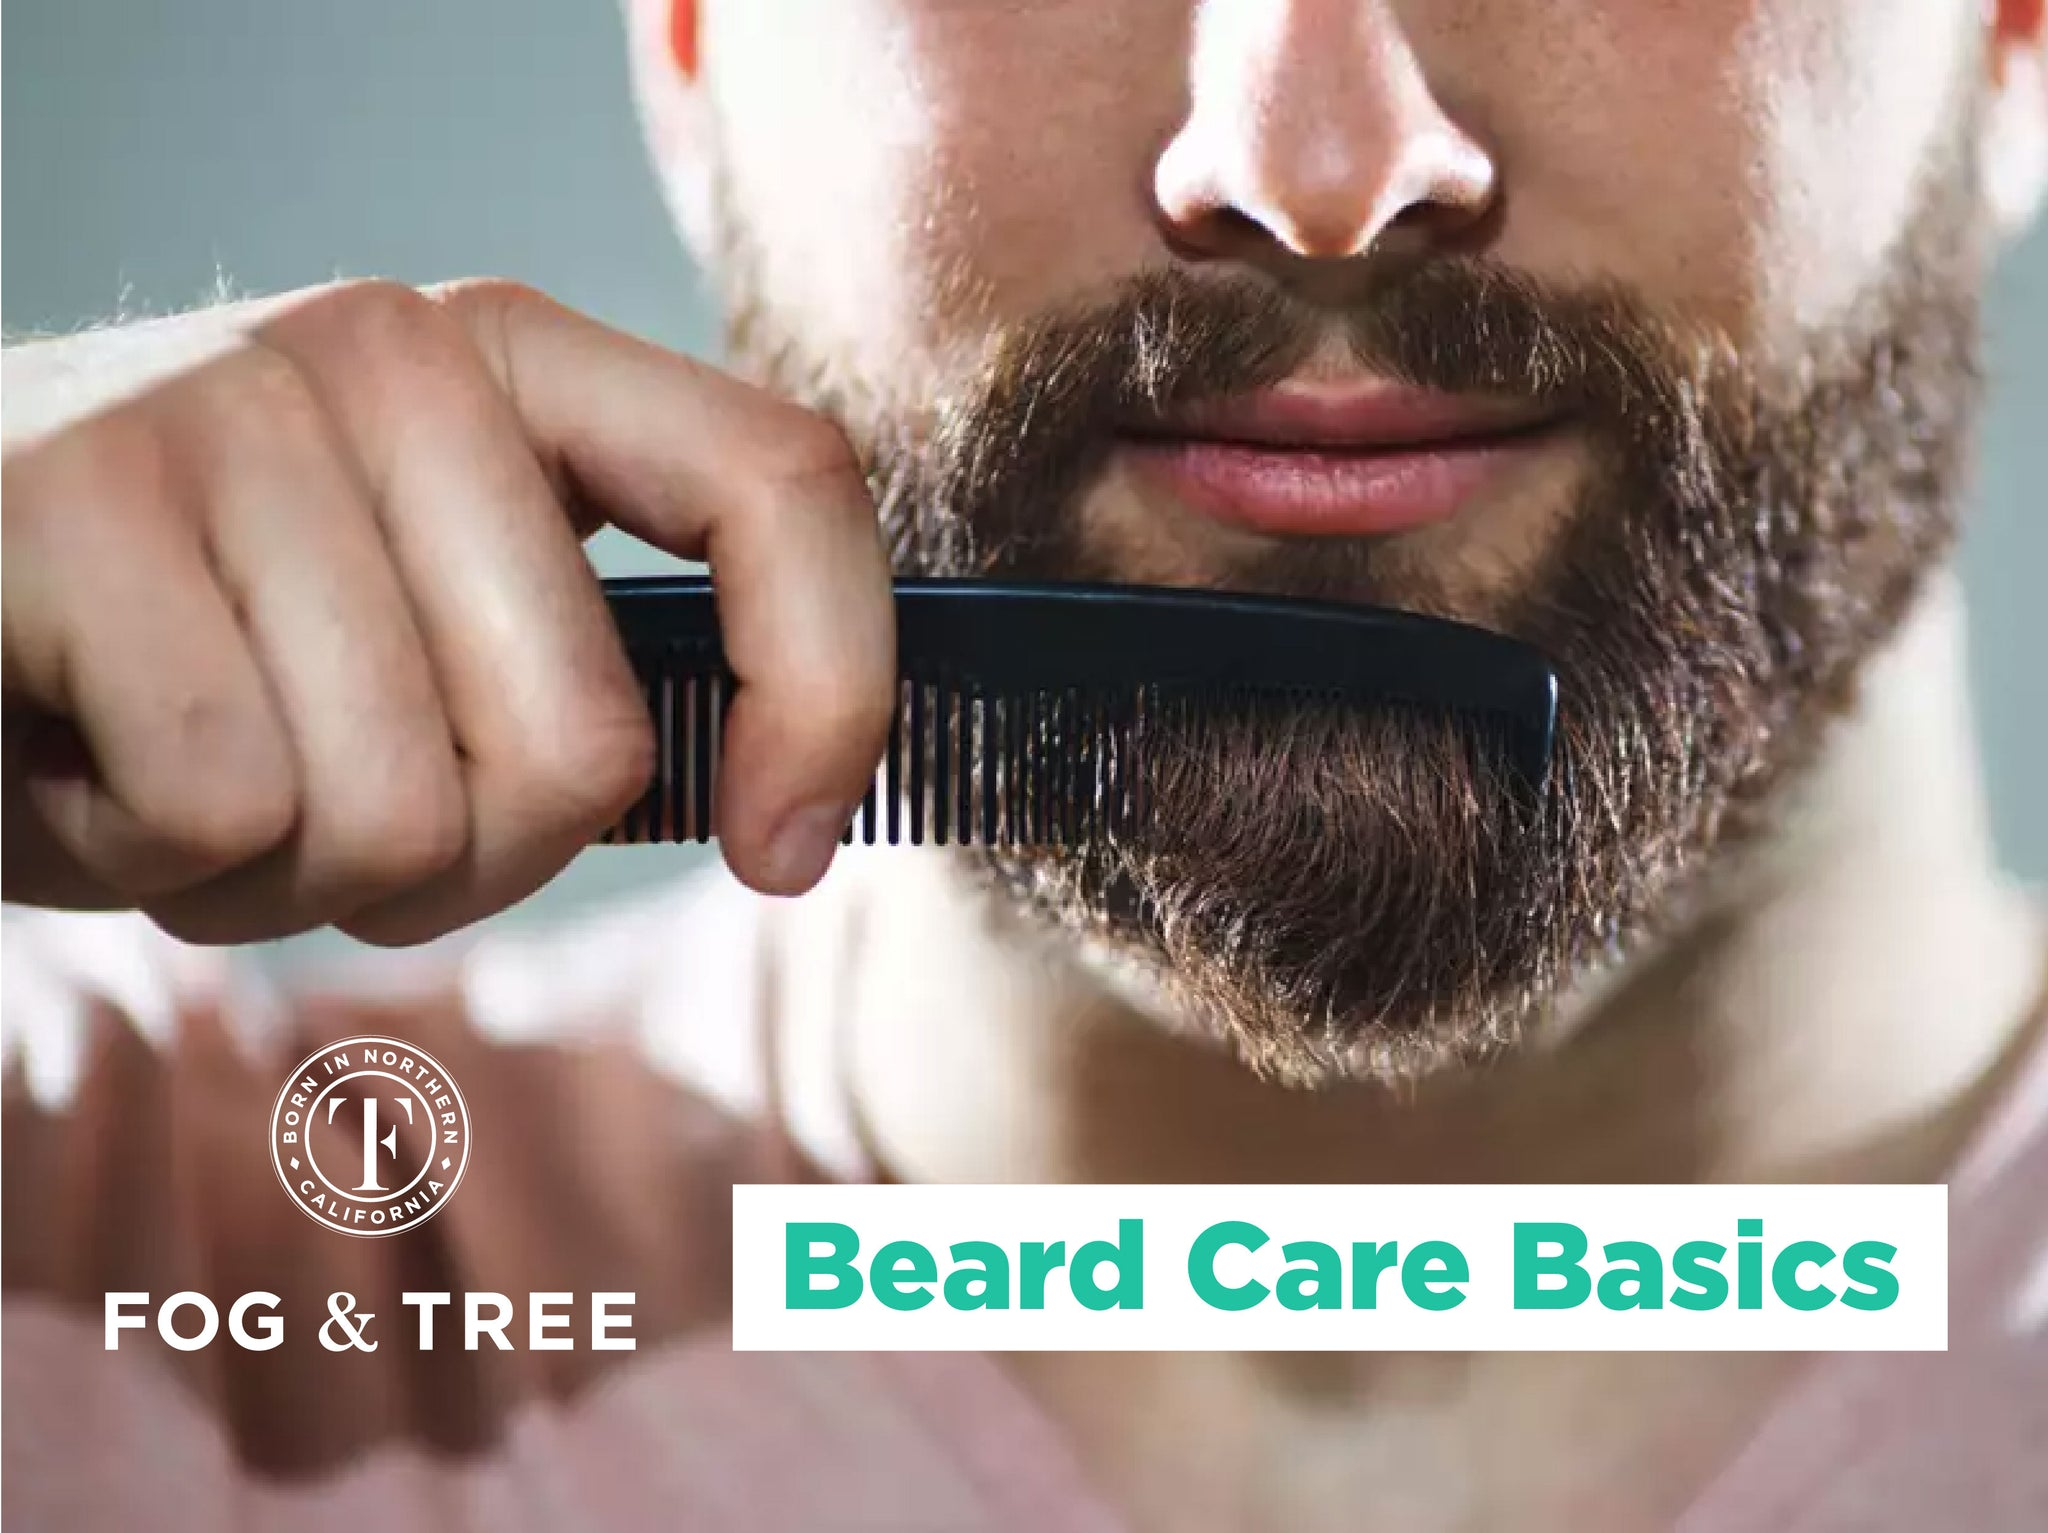 Beard Care Basics